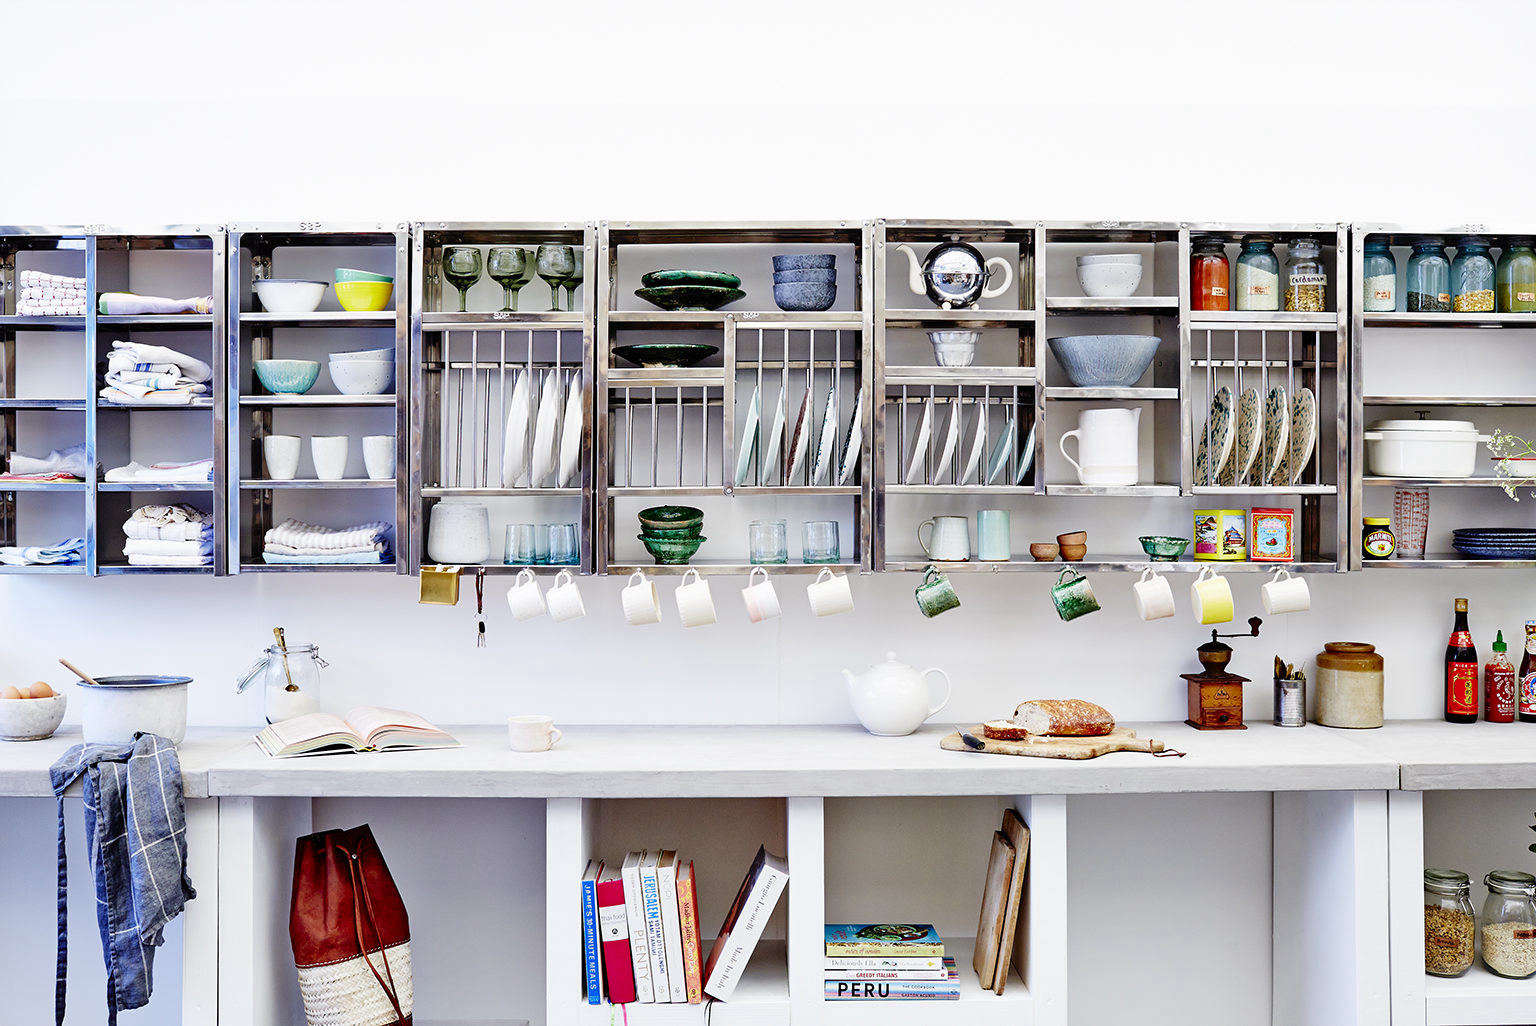 Indian Stainless Steel Kitchen Dish Racks And Shelves From